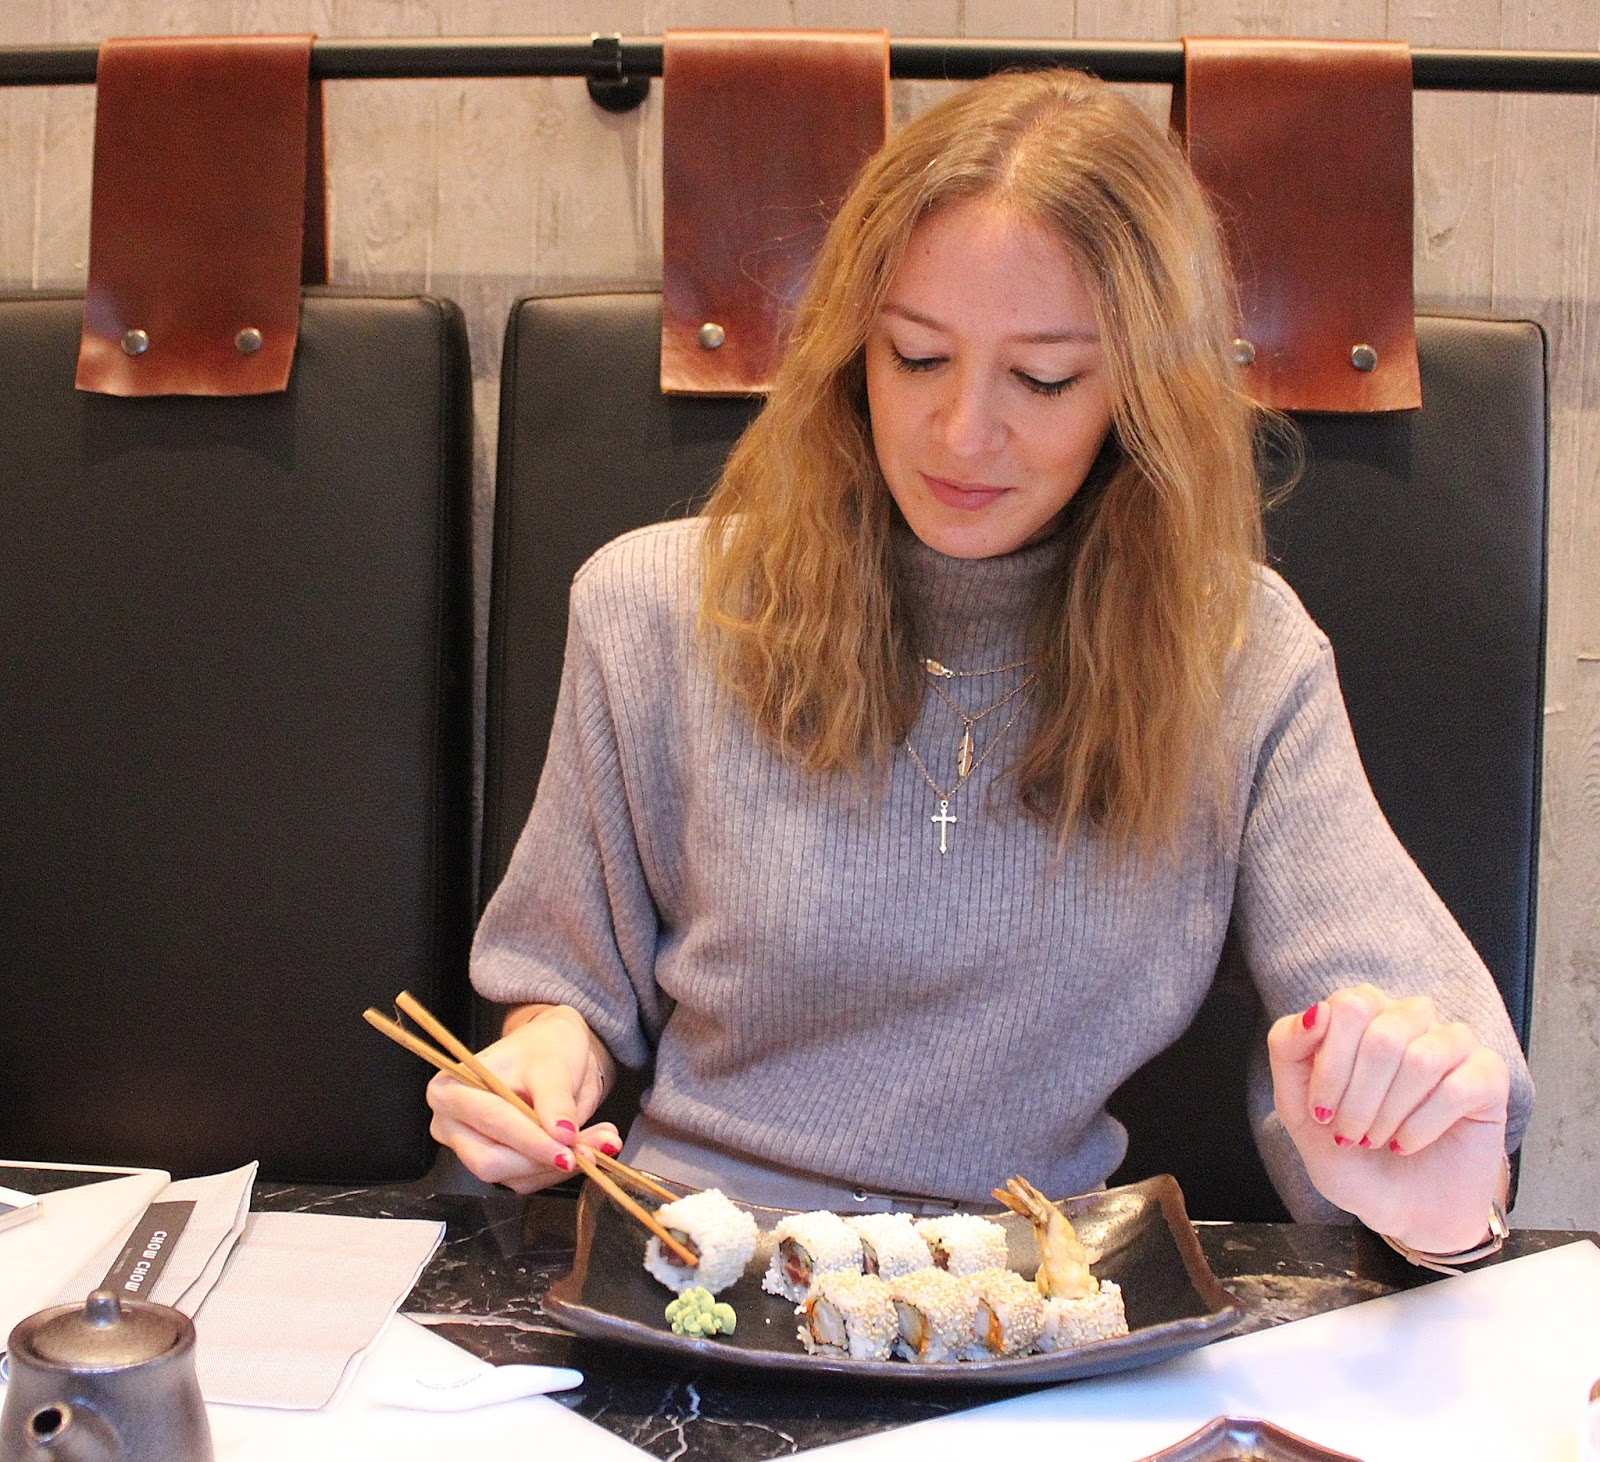 chow-chow-madrid-japo-latino-restaurante-foodie-top